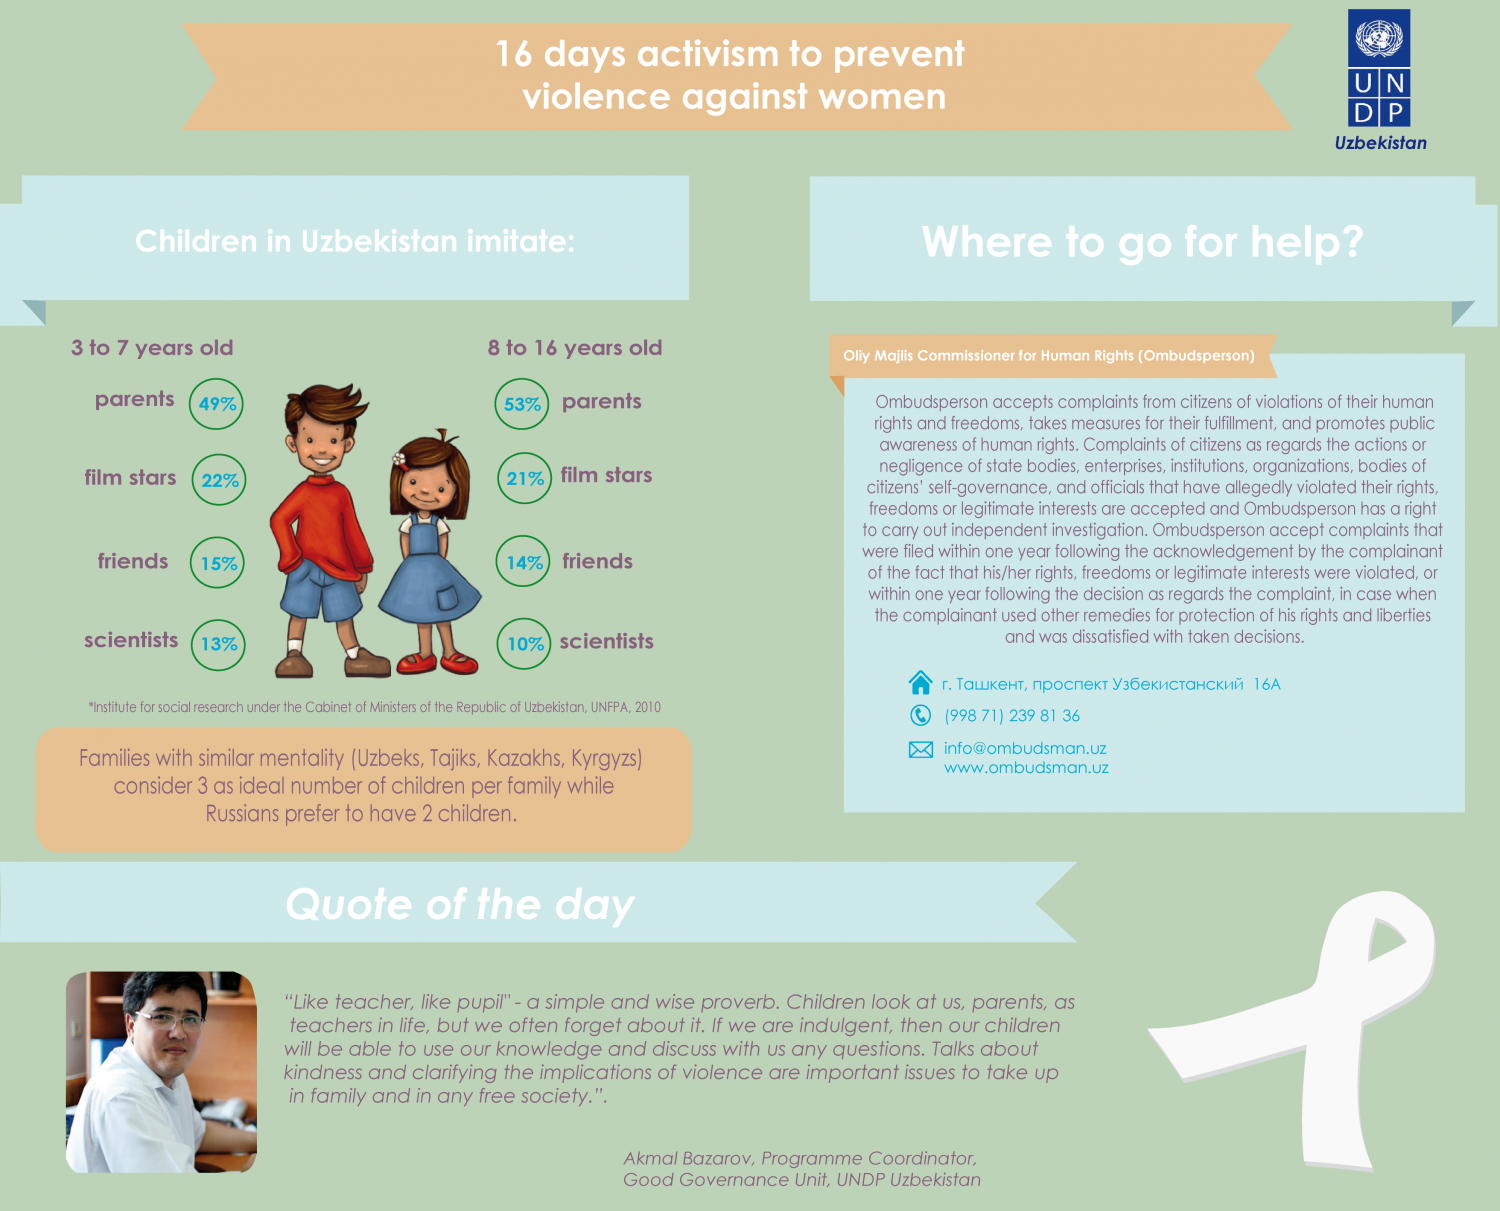 Who children imitate in Uzbekistan? Infographic